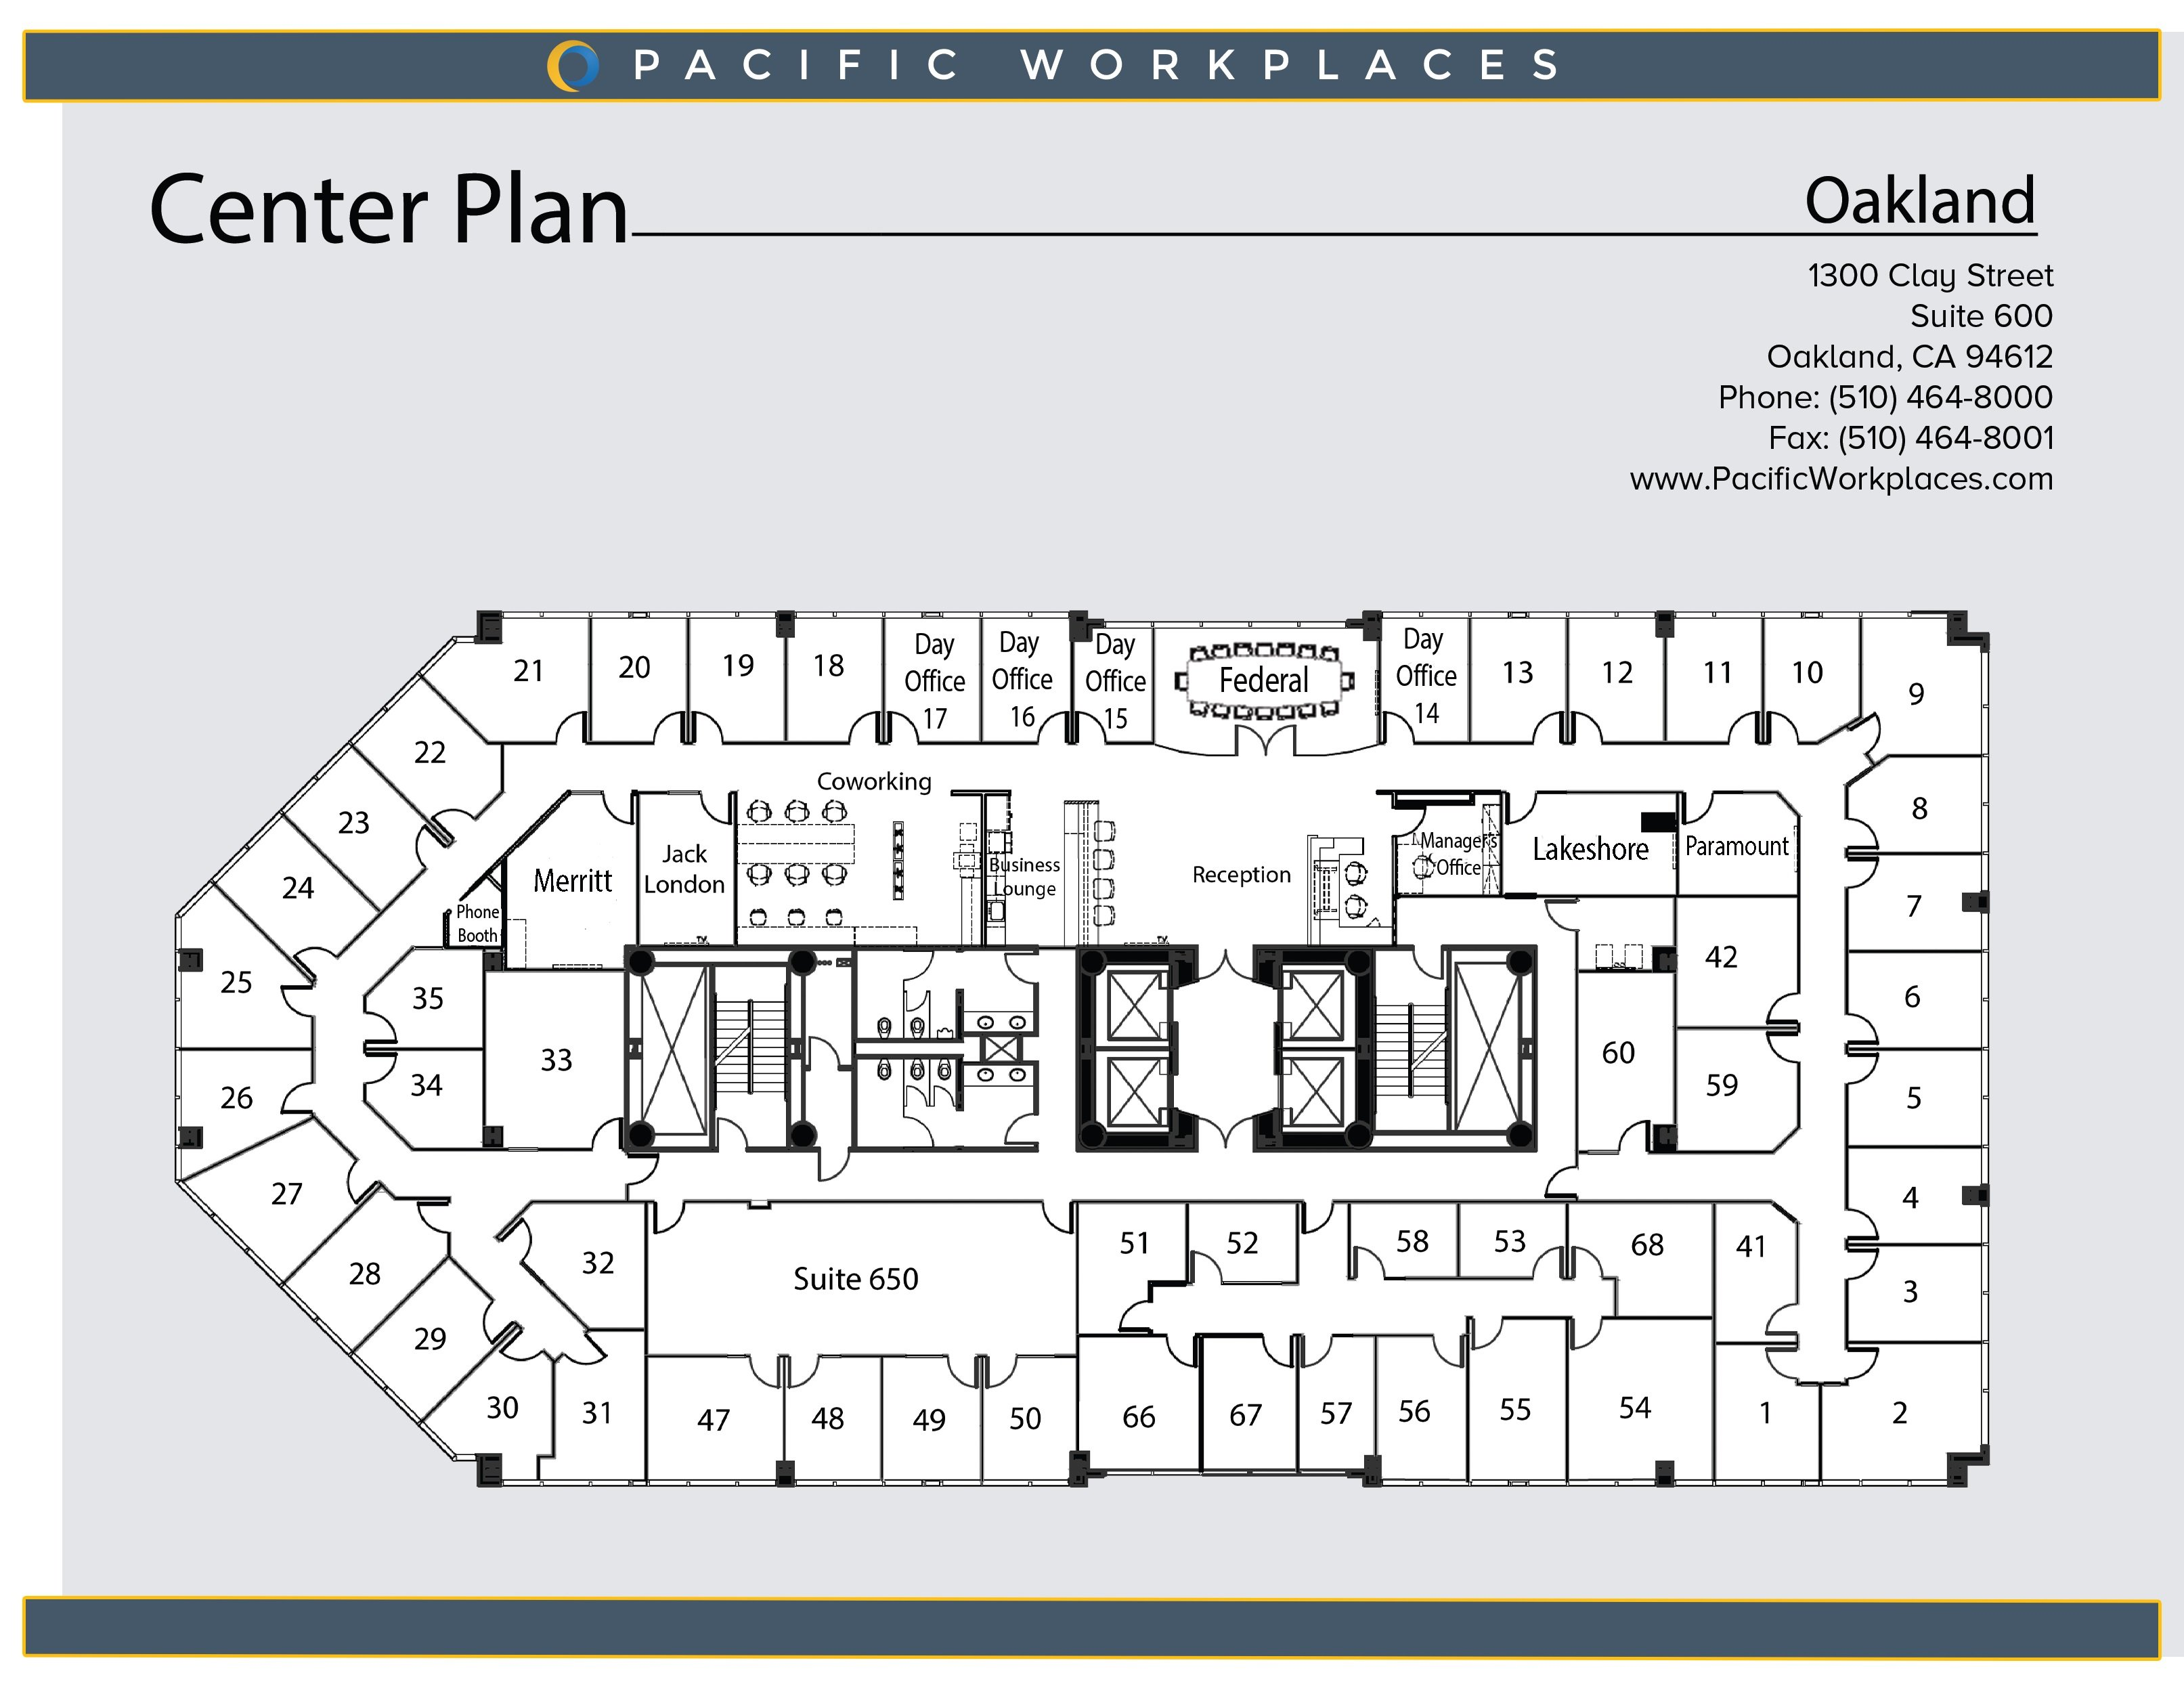 Pacific Workplaces Oakland Floor Plan 052620